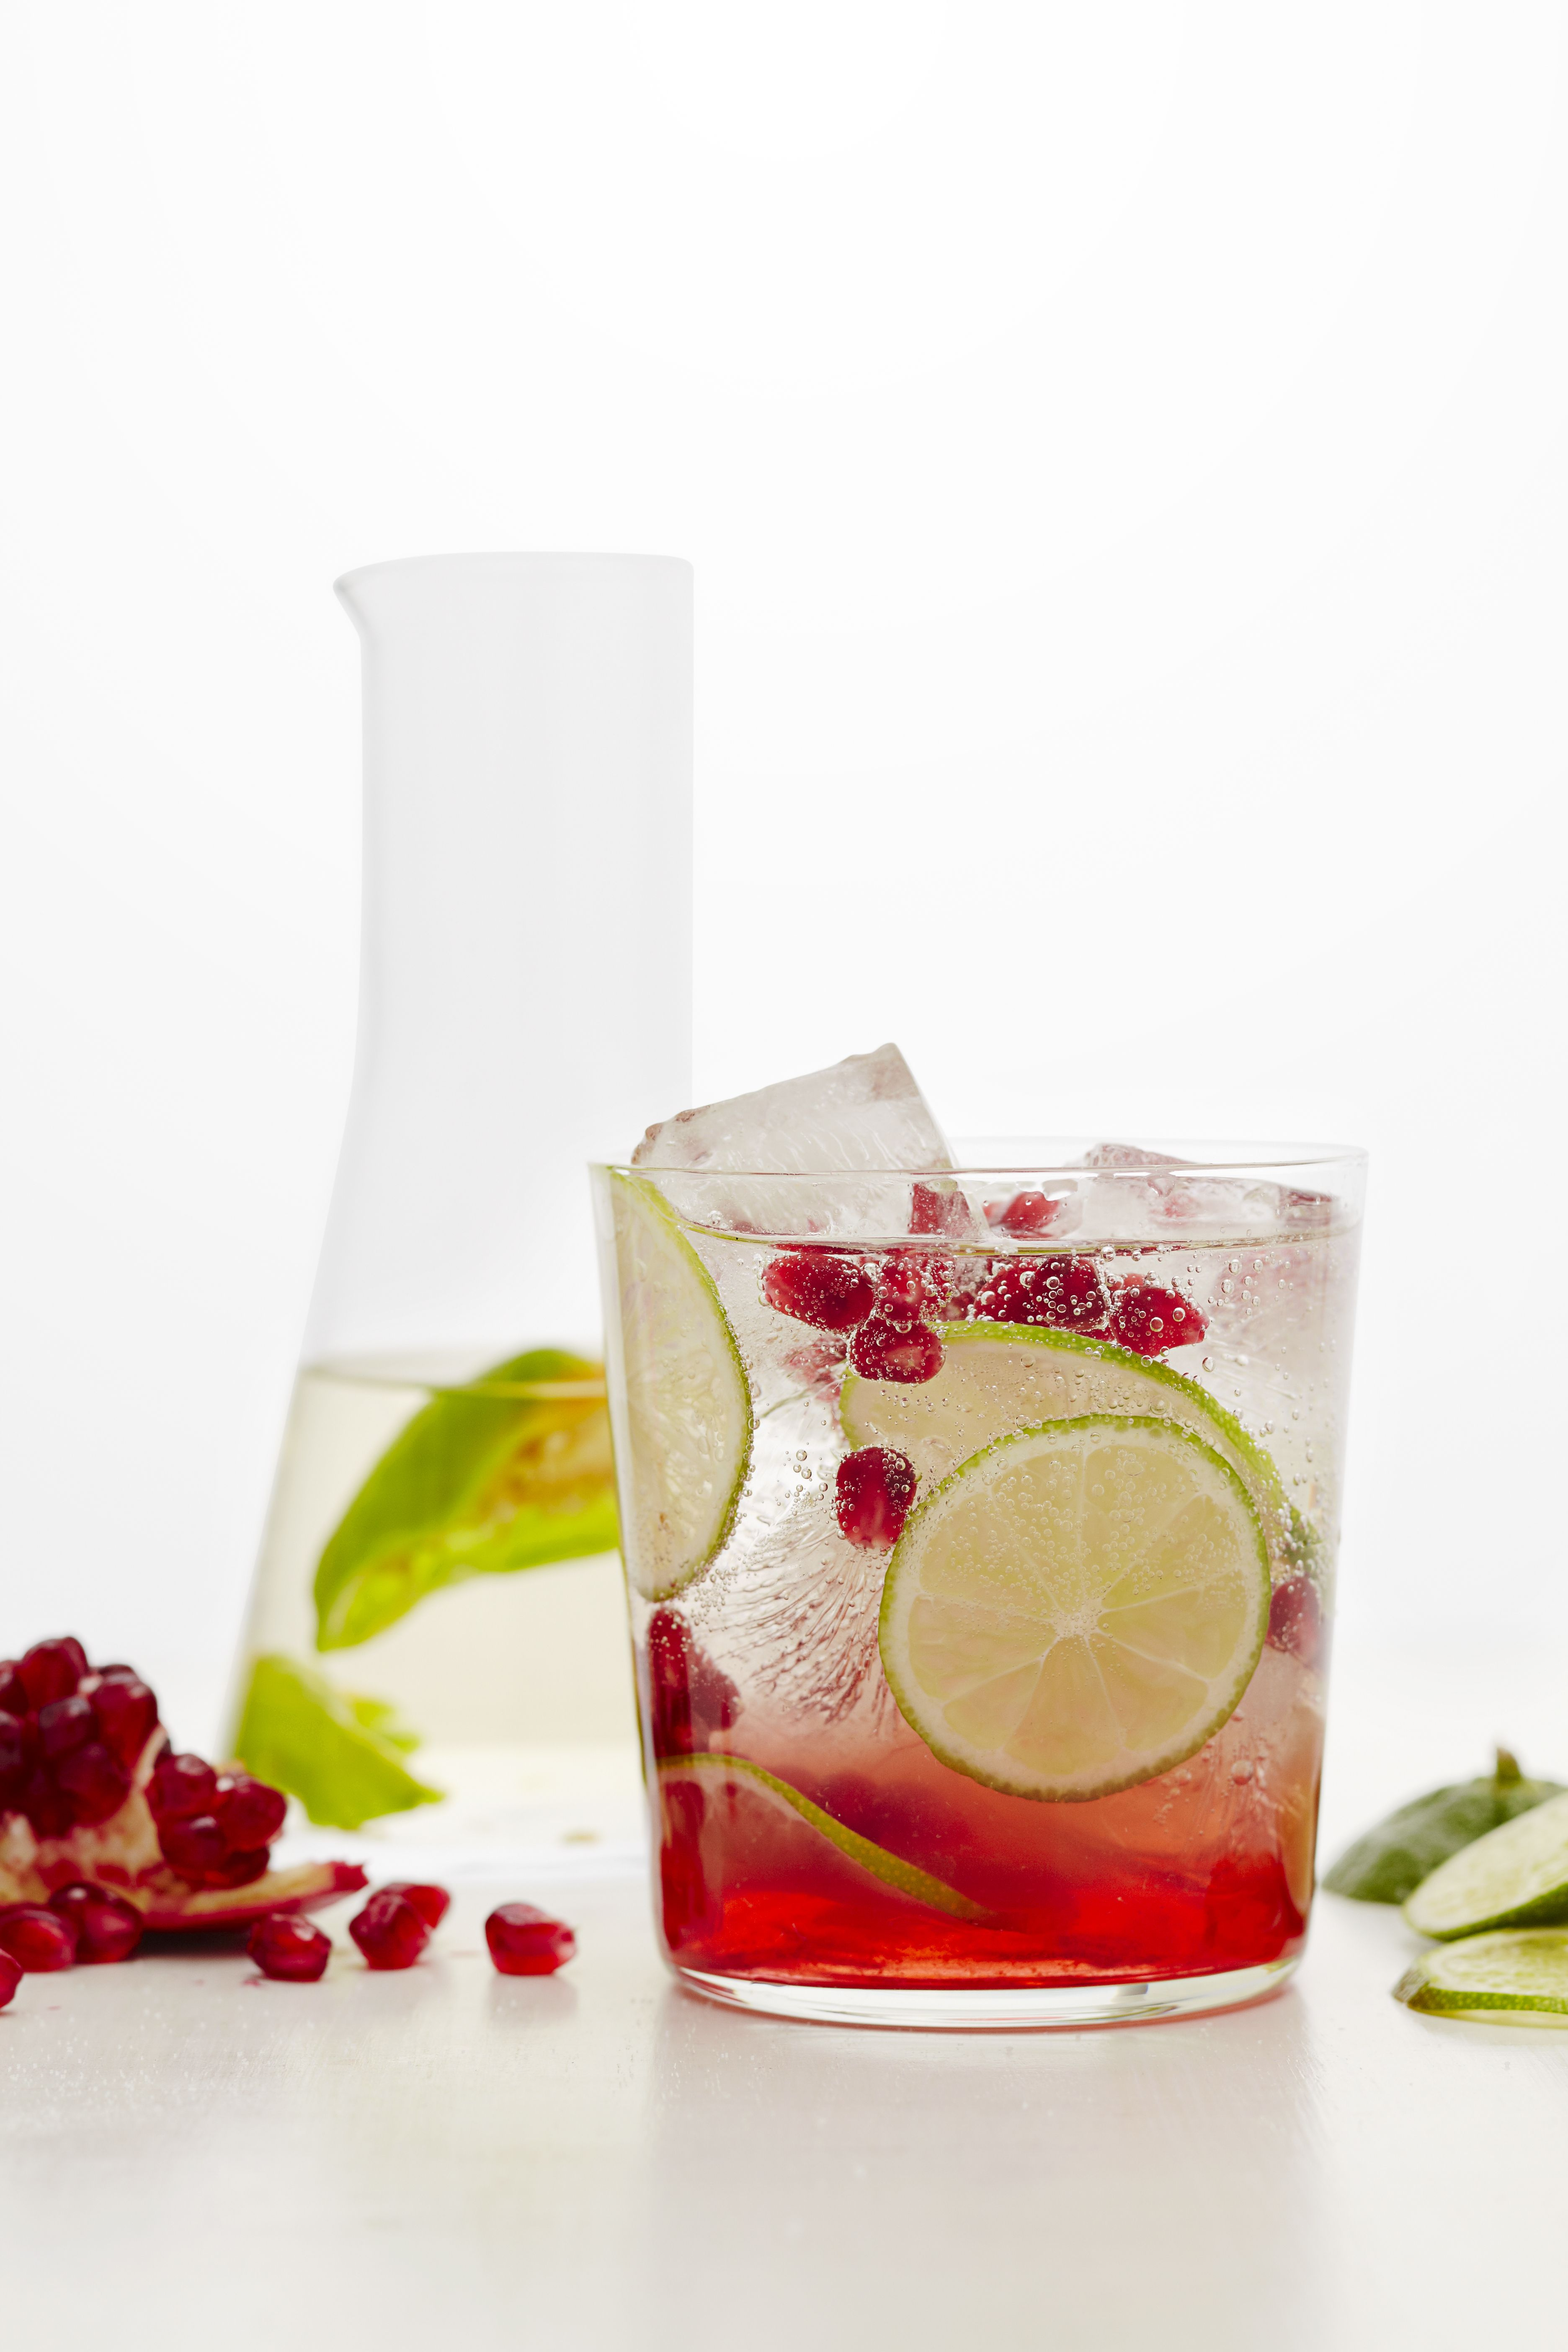 Pomegranate Margaritas with Habanero Tequila Recipe